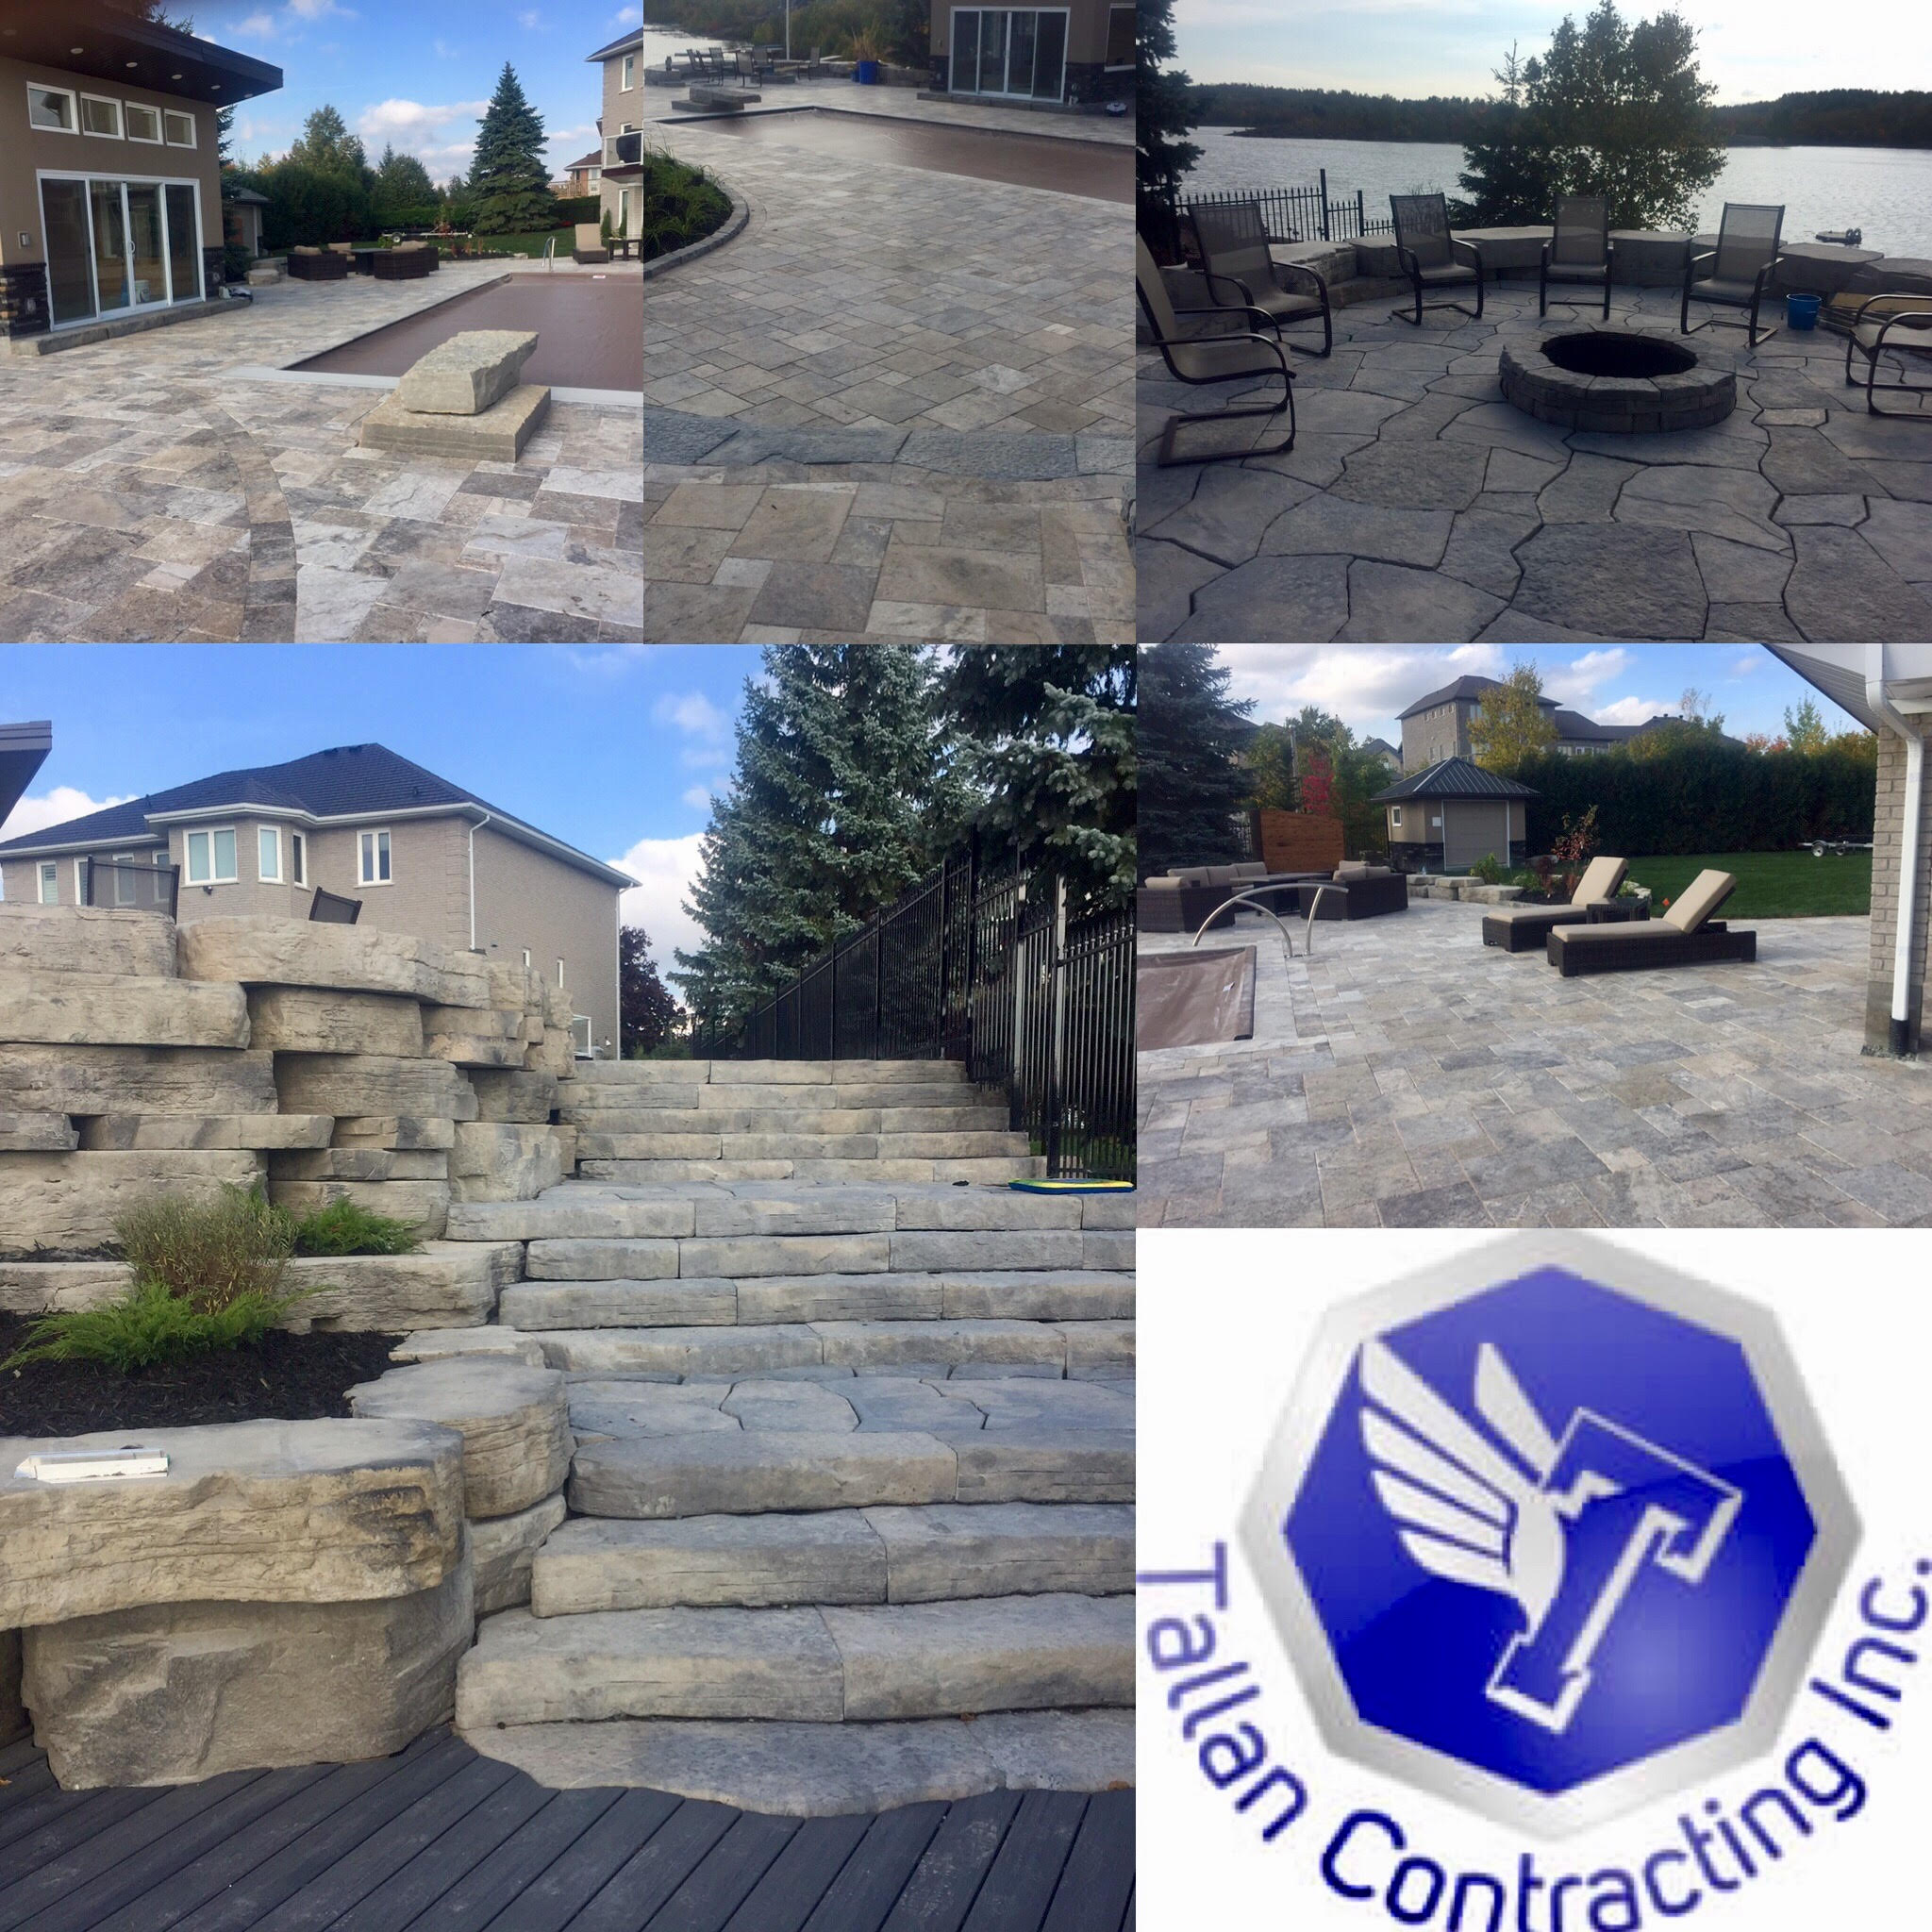 Built by Tallan Contracting